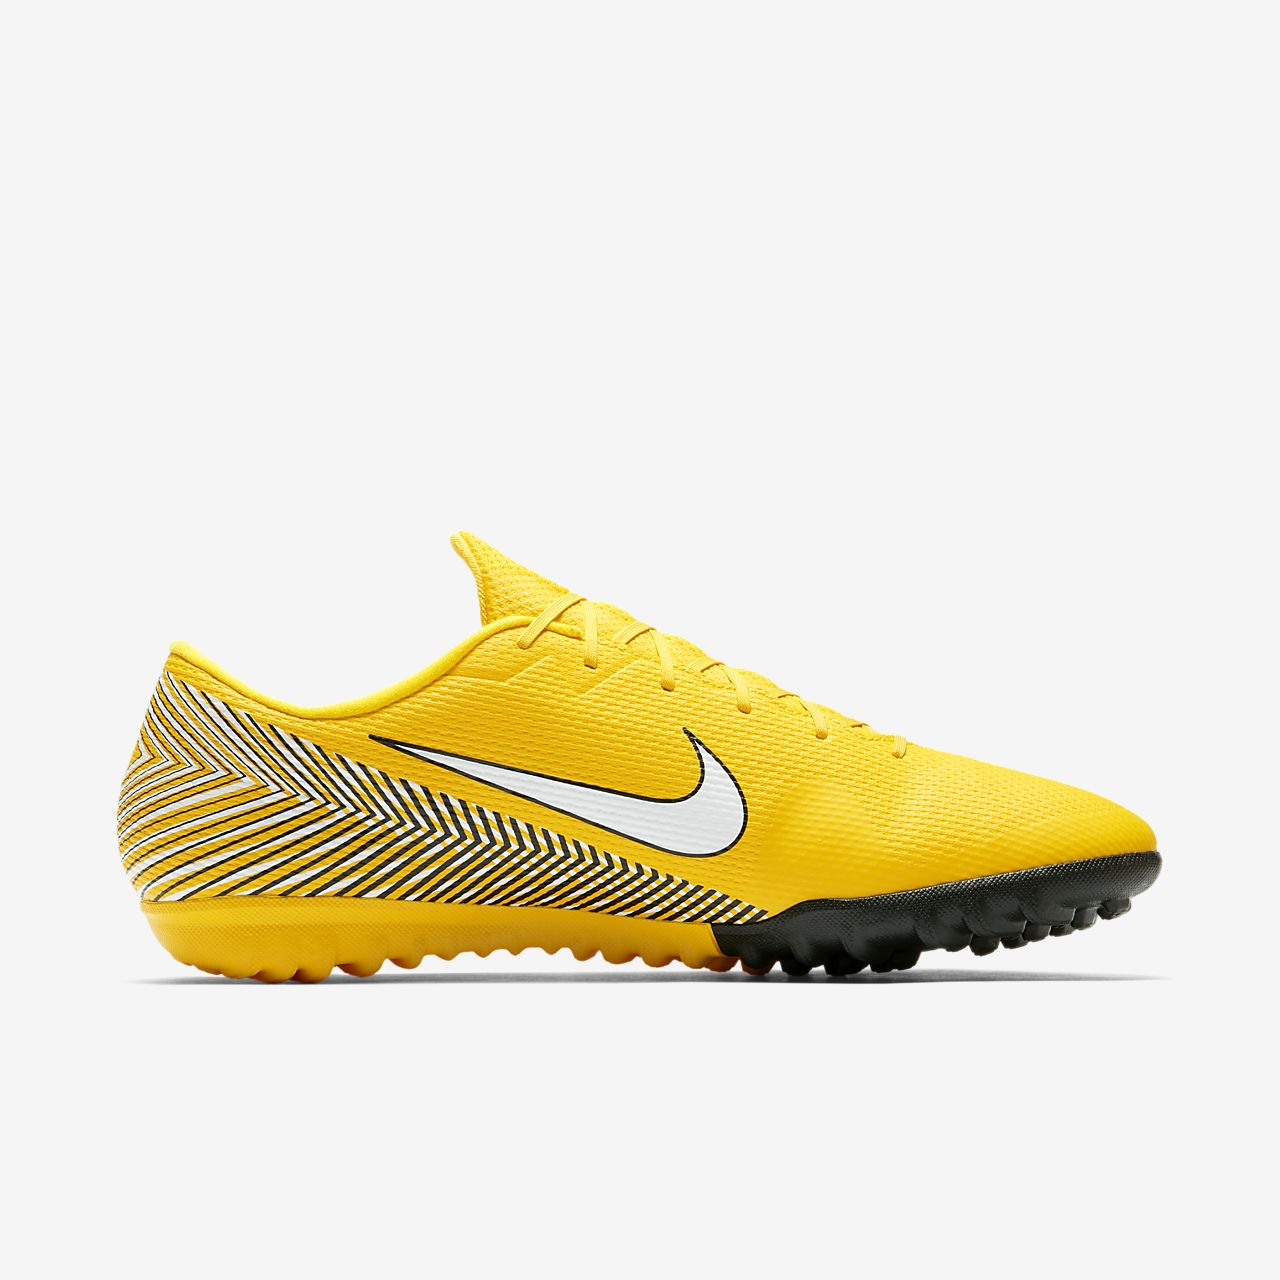 ... Nike Mercurial Vapor XII Academy Neymar TF Artificial-Turf Football Shoe